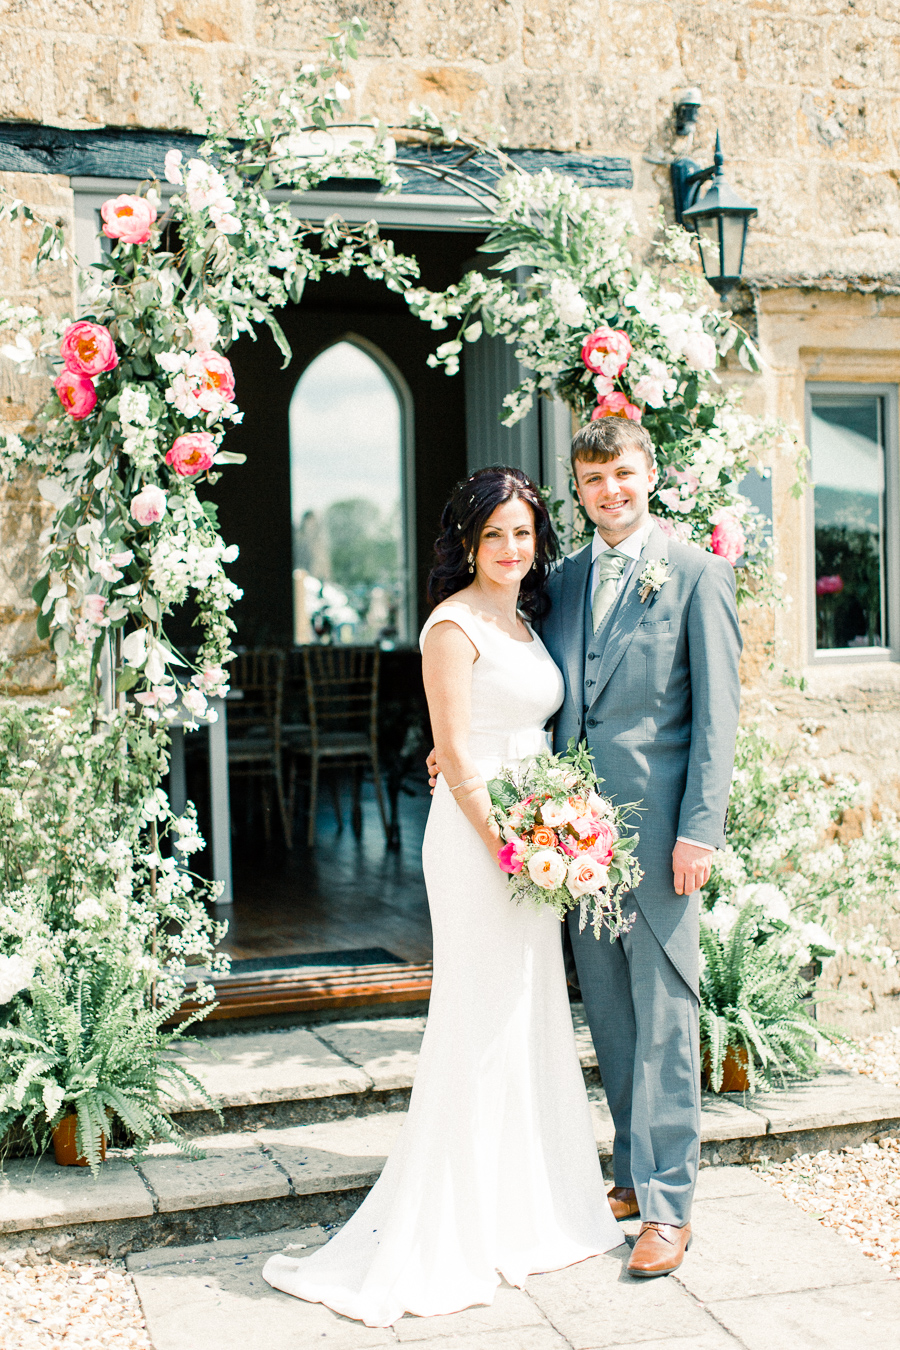 Jordans Courtyard rustic wedding styling ideas with images by Liz Baker Photography (27)